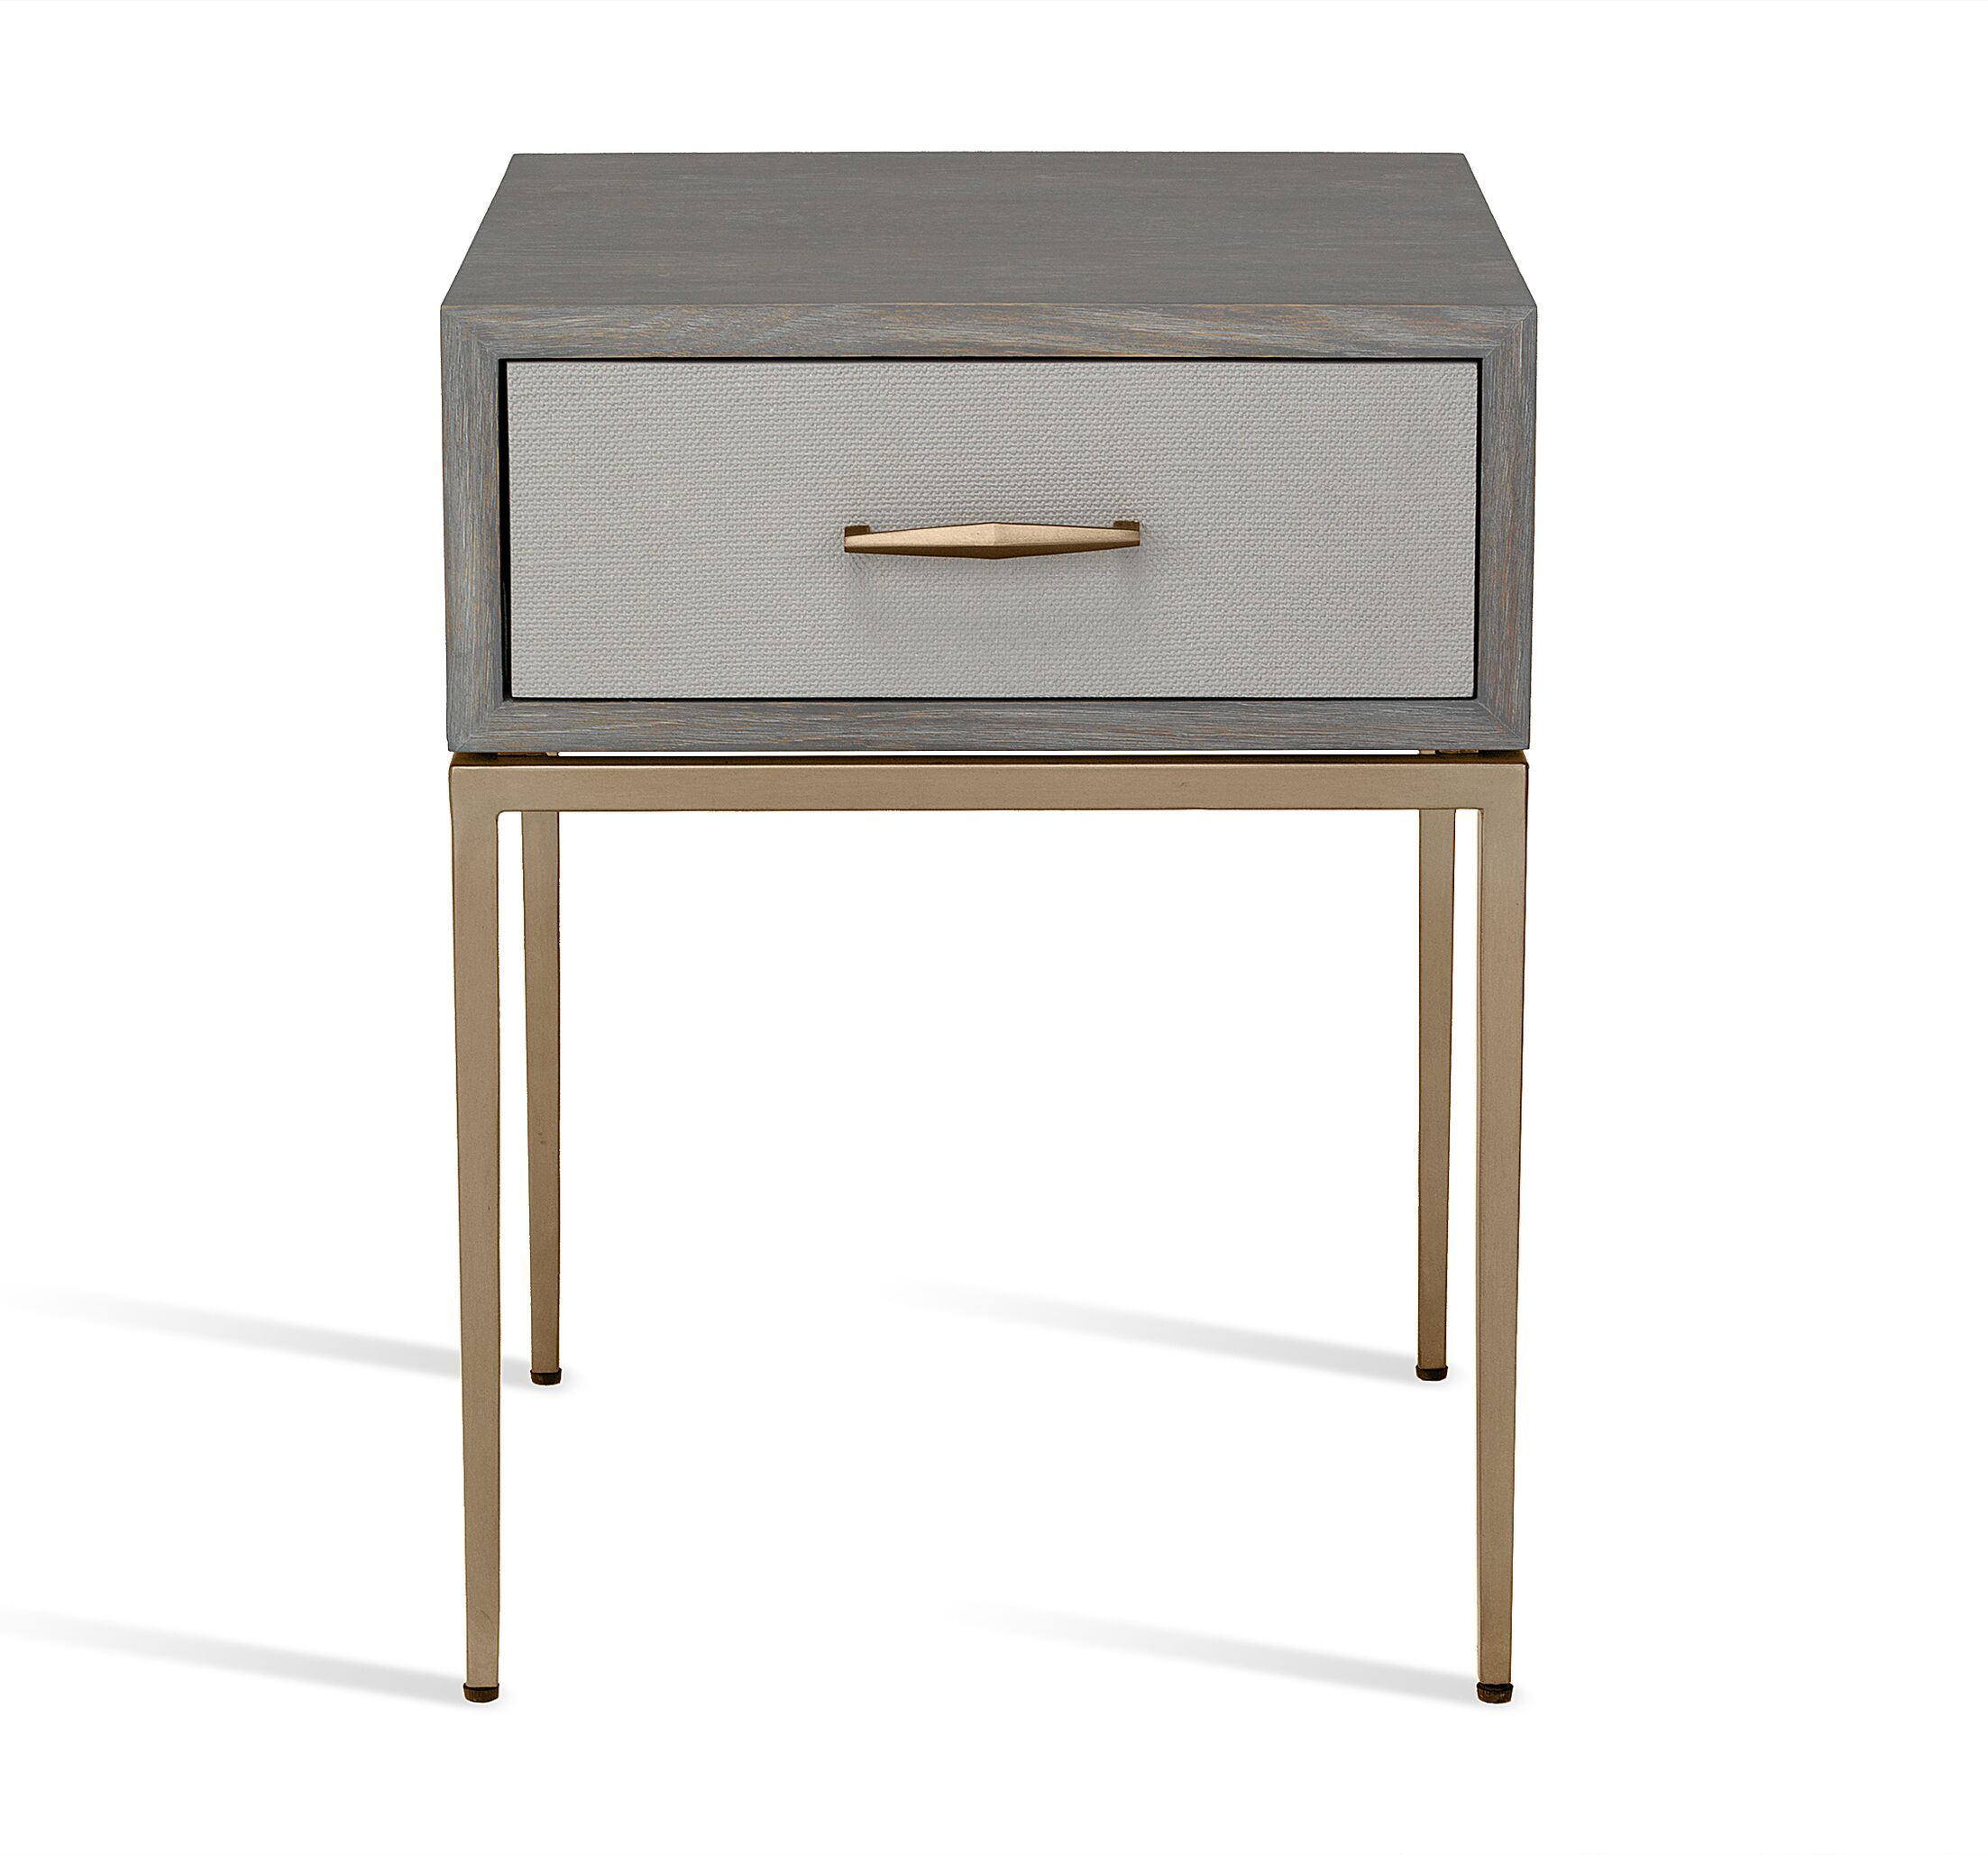 Corinna 1 Drawer Nightstand Color(Top/Base/Hardware): Gray Wash Oak/ Light Gray/ Antique Brass